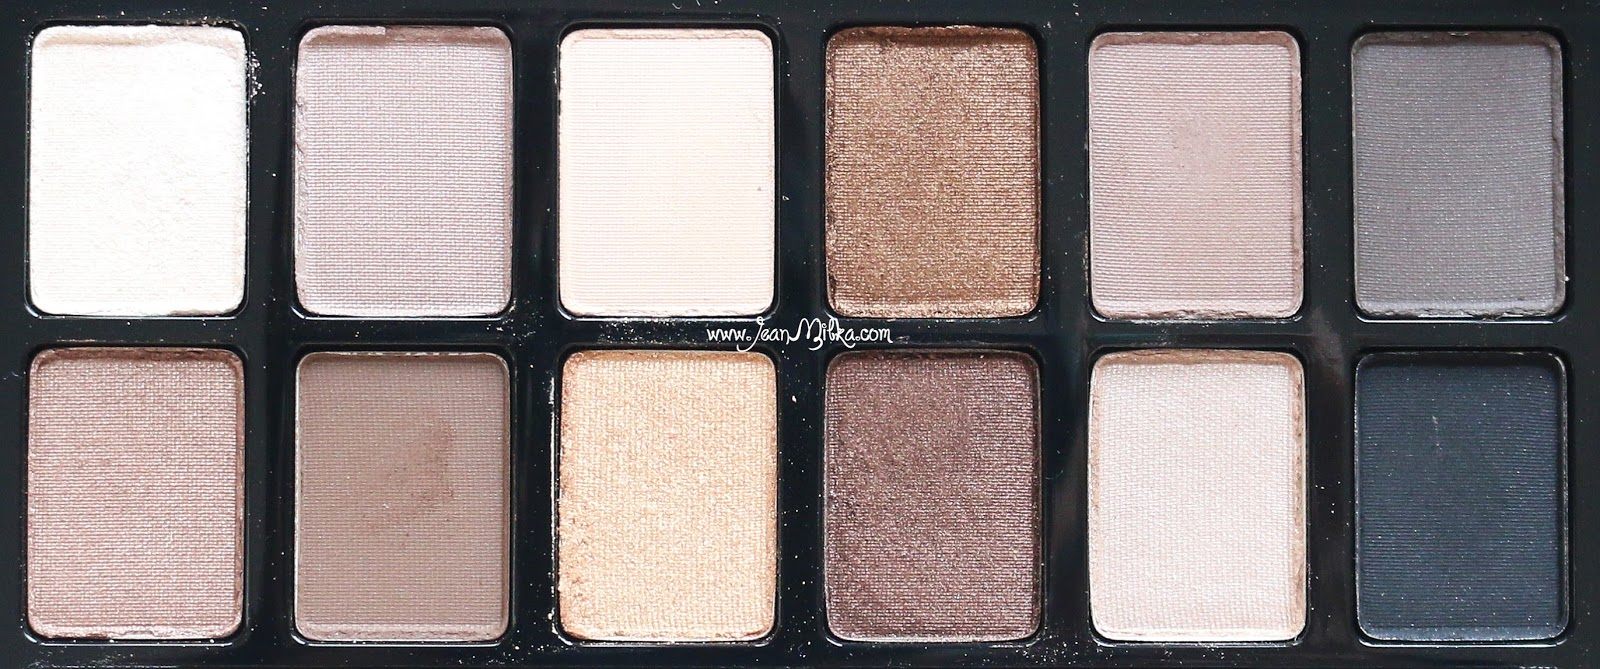 maybelline, the nudes, palette, eyeshadow, review, swatch, drugstore, maybelline the nudes, eyeshadow palette, beauty, makeup,